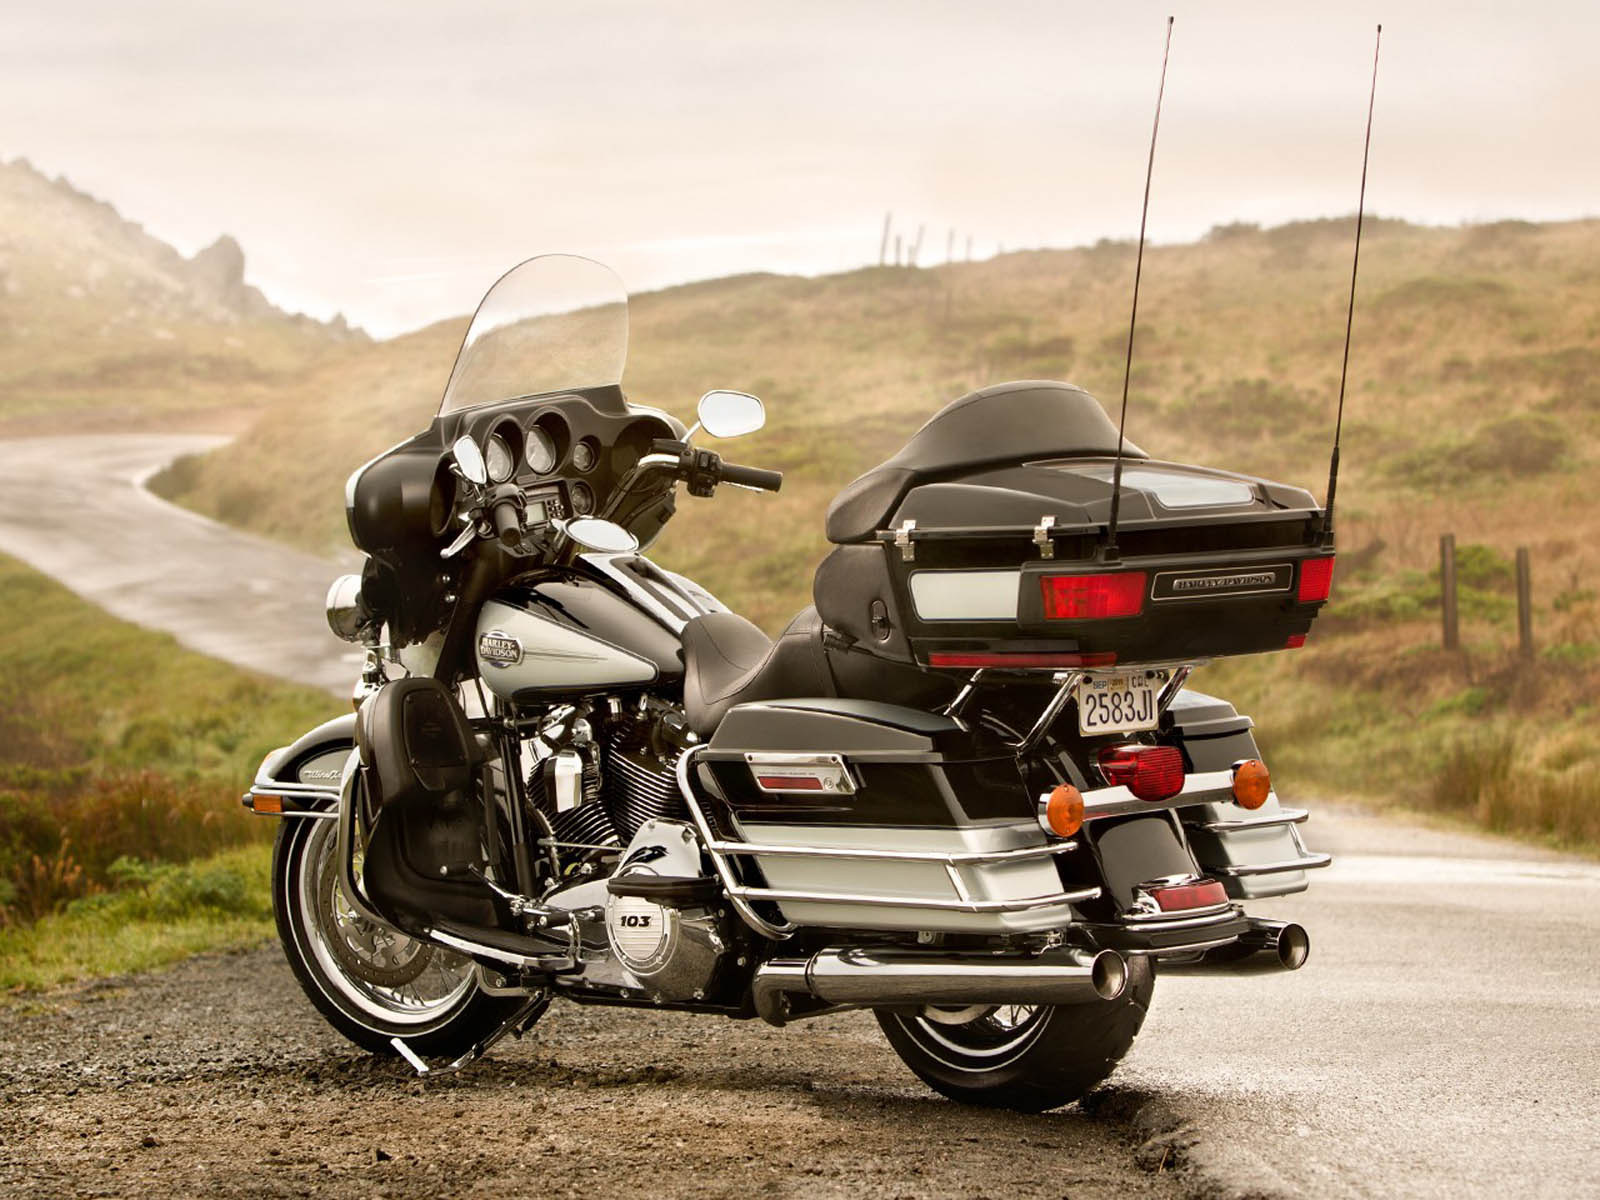 1600x1200 - Harley-Davidson Electra Glide Ultra Classic Wallpapers 14